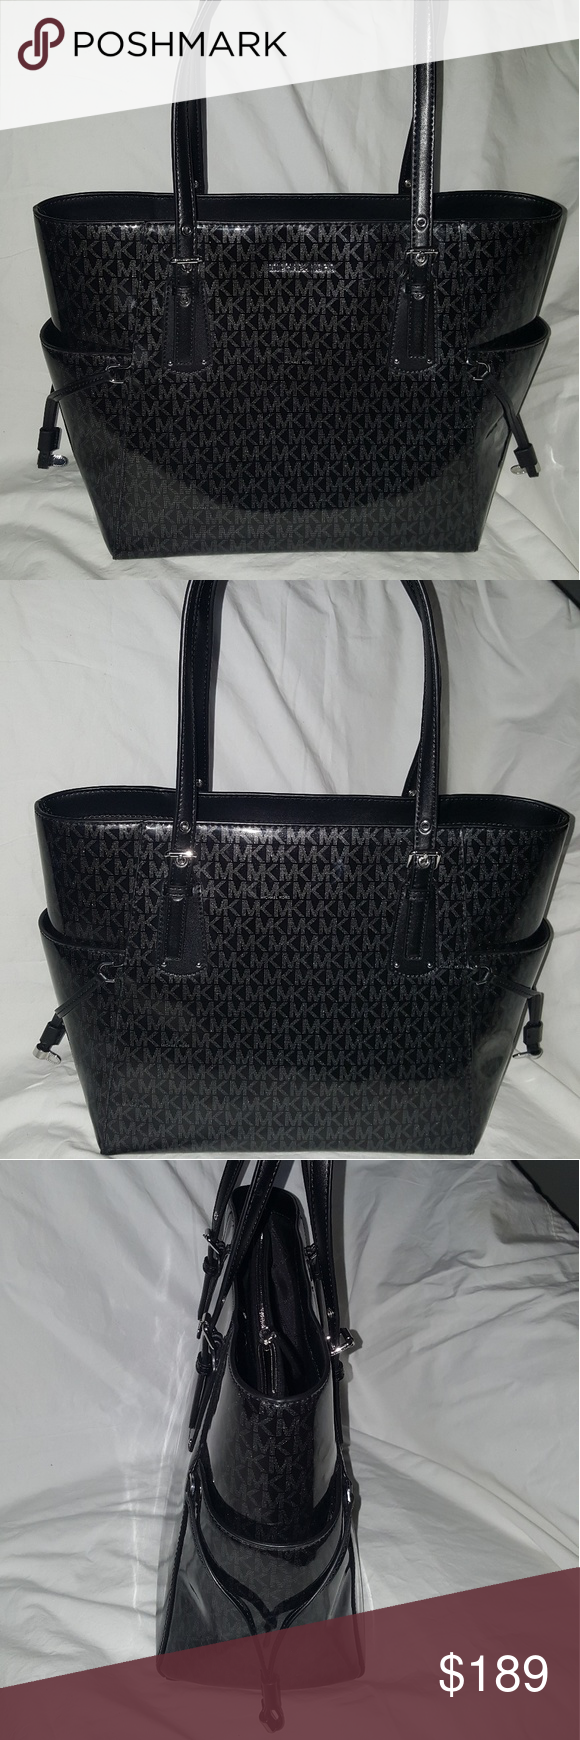 3174c371d6e2 Michael Kors Signature Black Glossy Voyager Tote This is a Store Display  Brand New With Tags